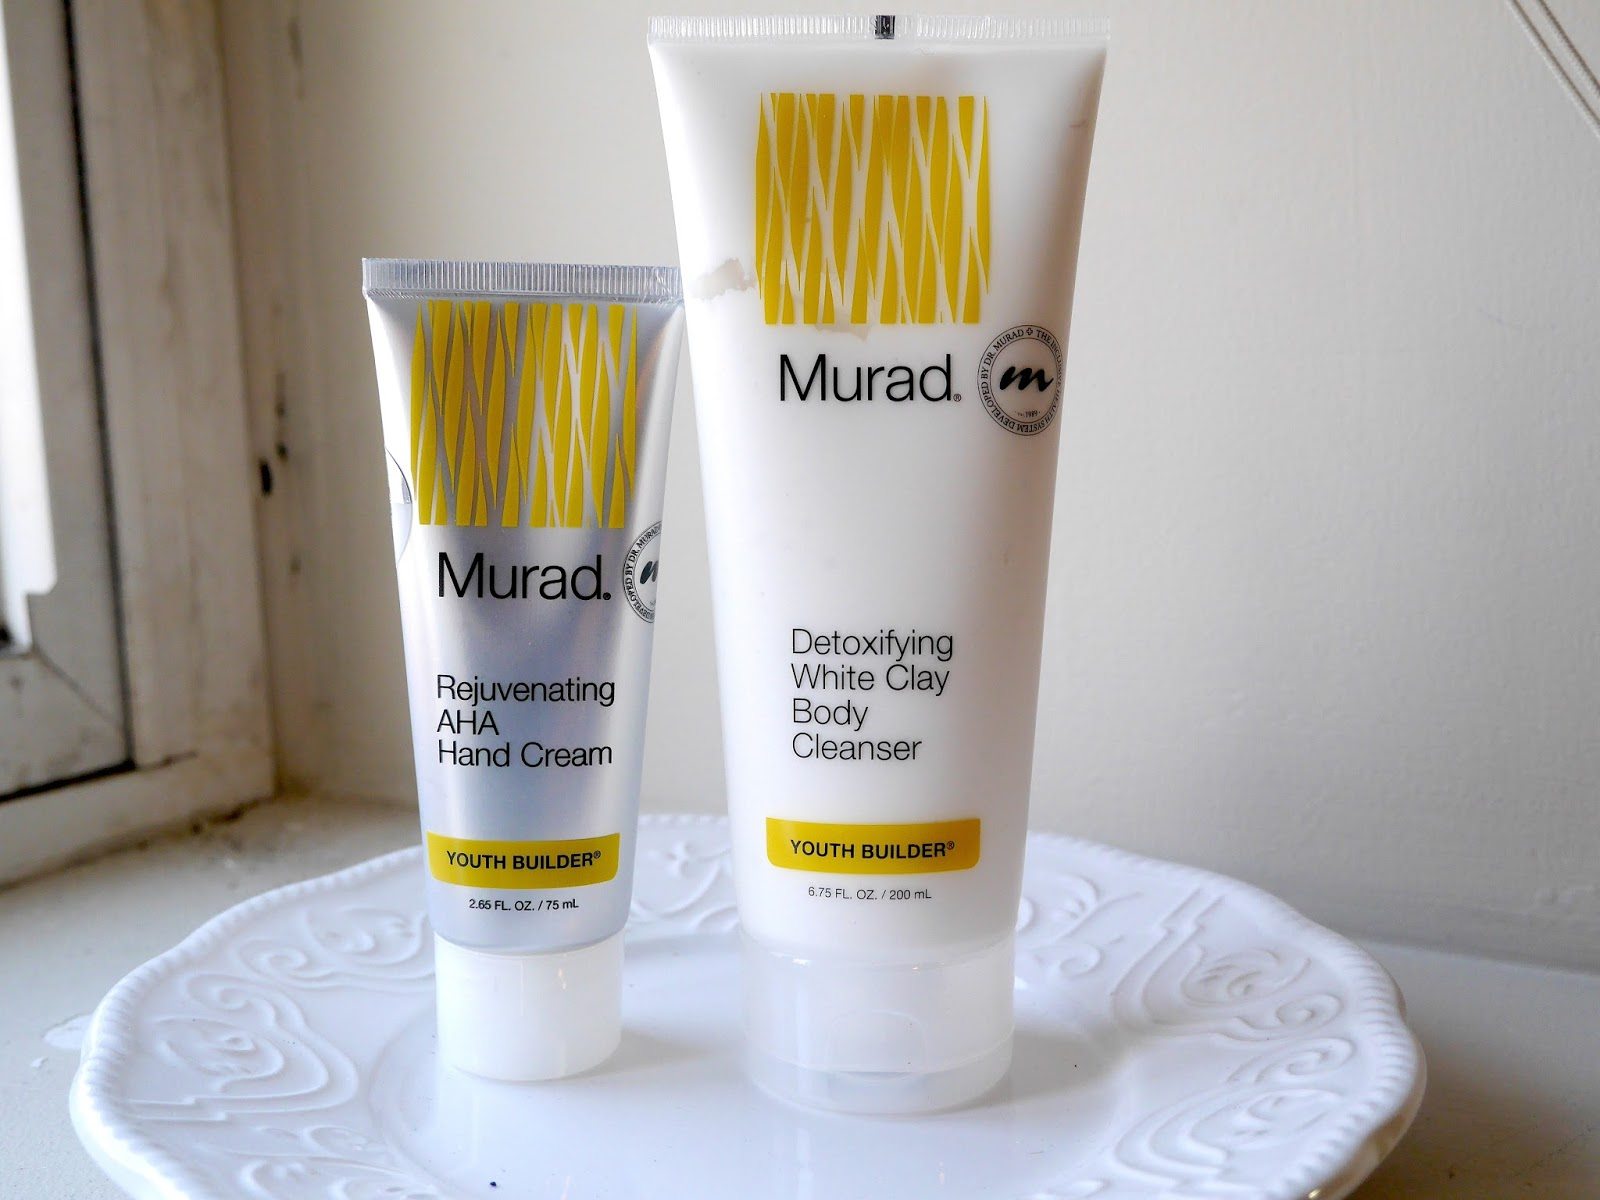 Murad Youth Builder rejuvenating aha hand cream detoxifying white clay body cleanser review